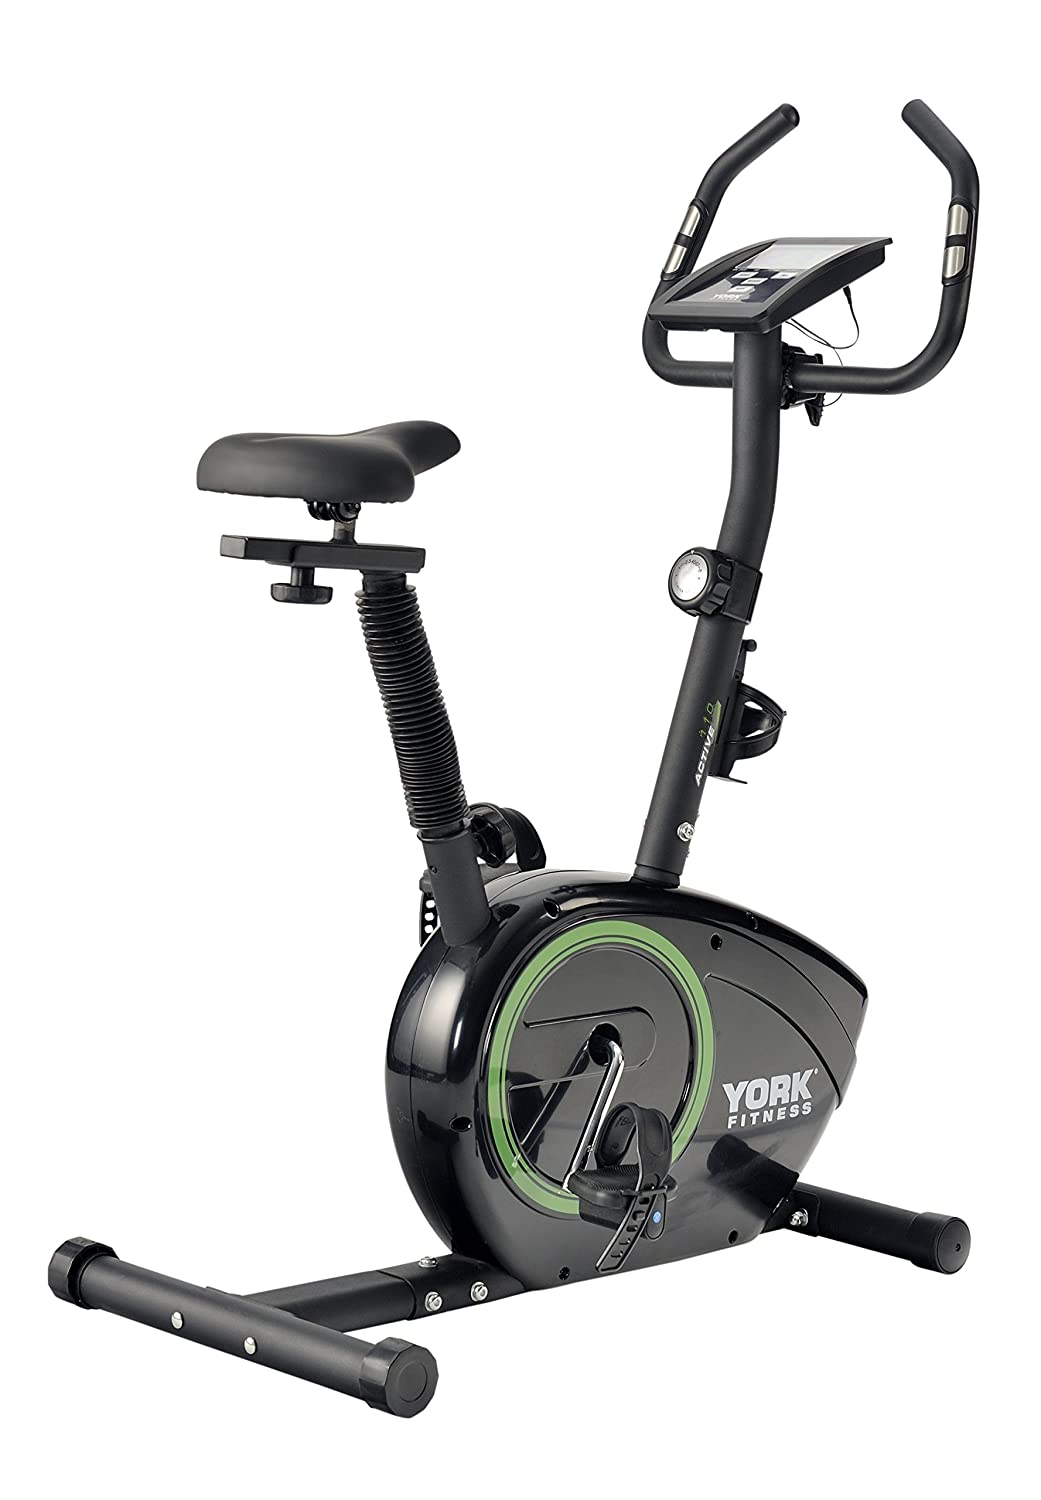 york fitness. york fitness active 110 exercise cycle - black/green: amazon.co.uk: sports \u0026 outdoors